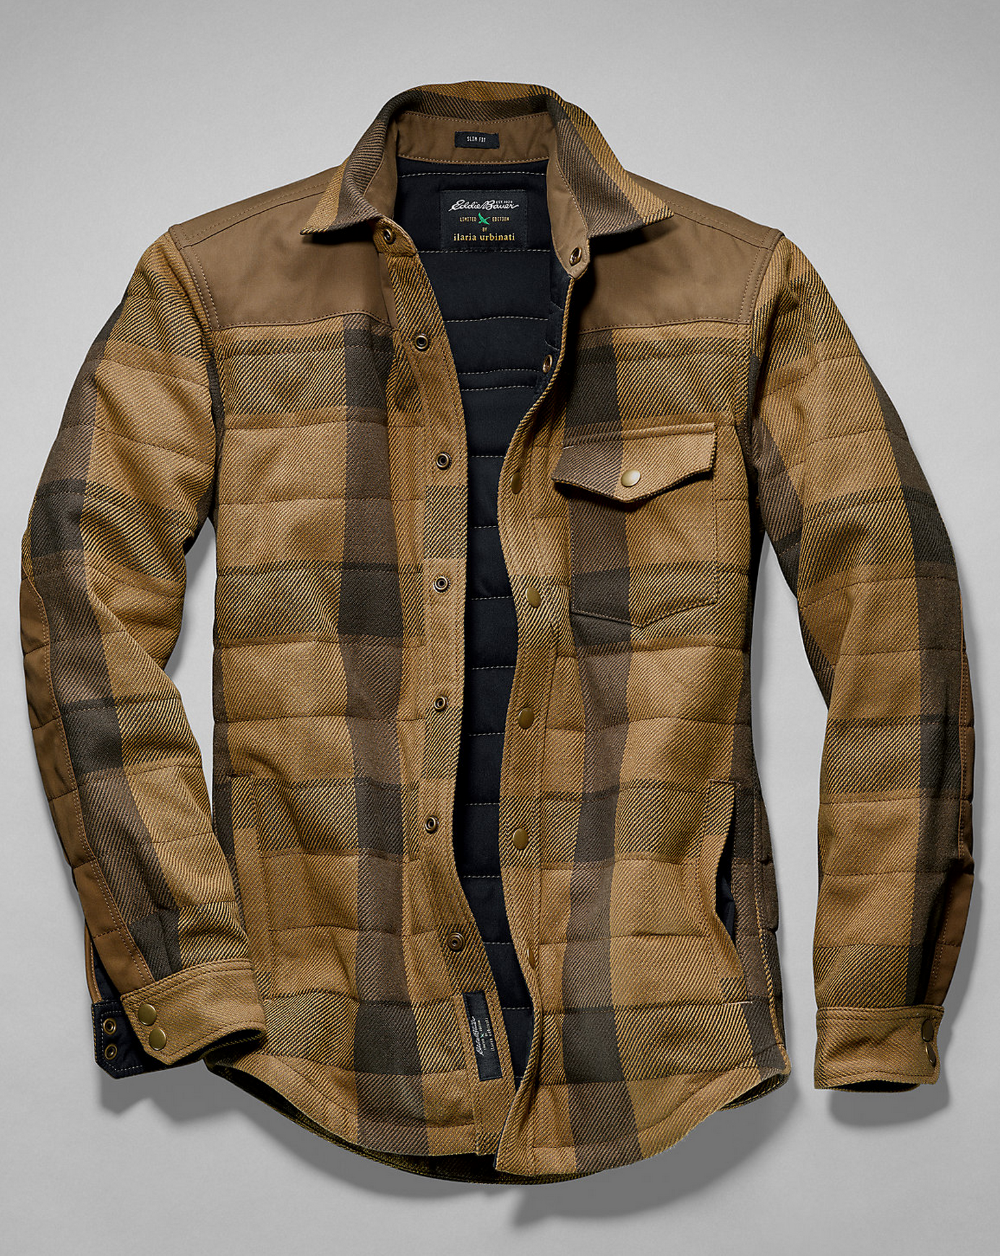 6761c7c5bedf8 Men s Woodhacker Heavy Twill Shirt Jacket  Roughhewn heritage, easy-wearing  lifestyle. Starting with the rugged cotton twill shell and waxed ...